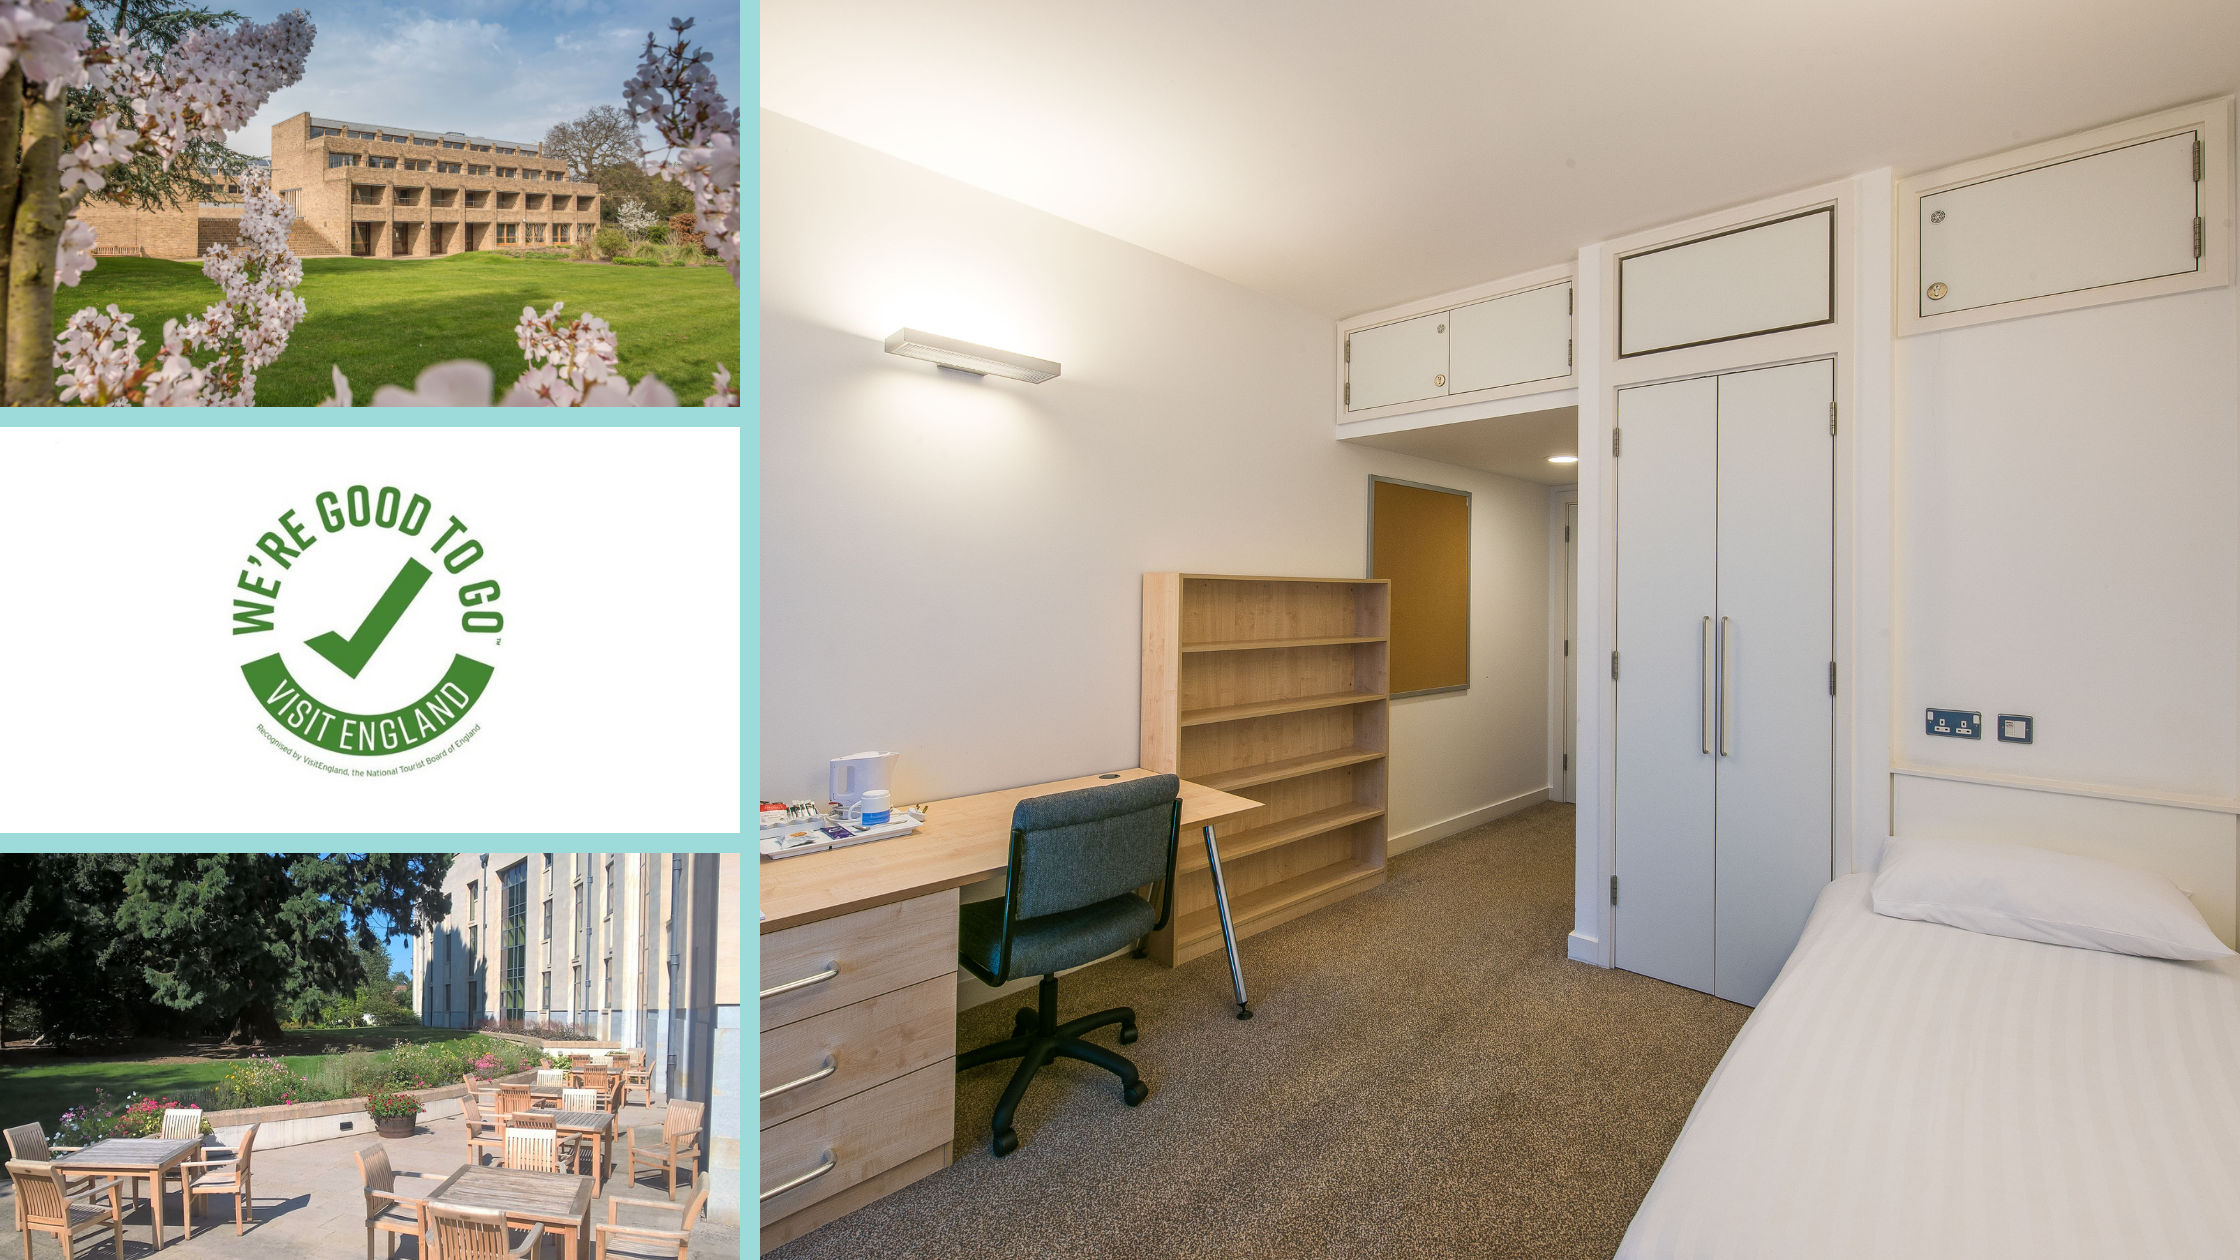 Photo collage of B&B accommodation - Bedroom, external view of Harvey Court, We're Good To Go logo and Stephen Hawking Building patio